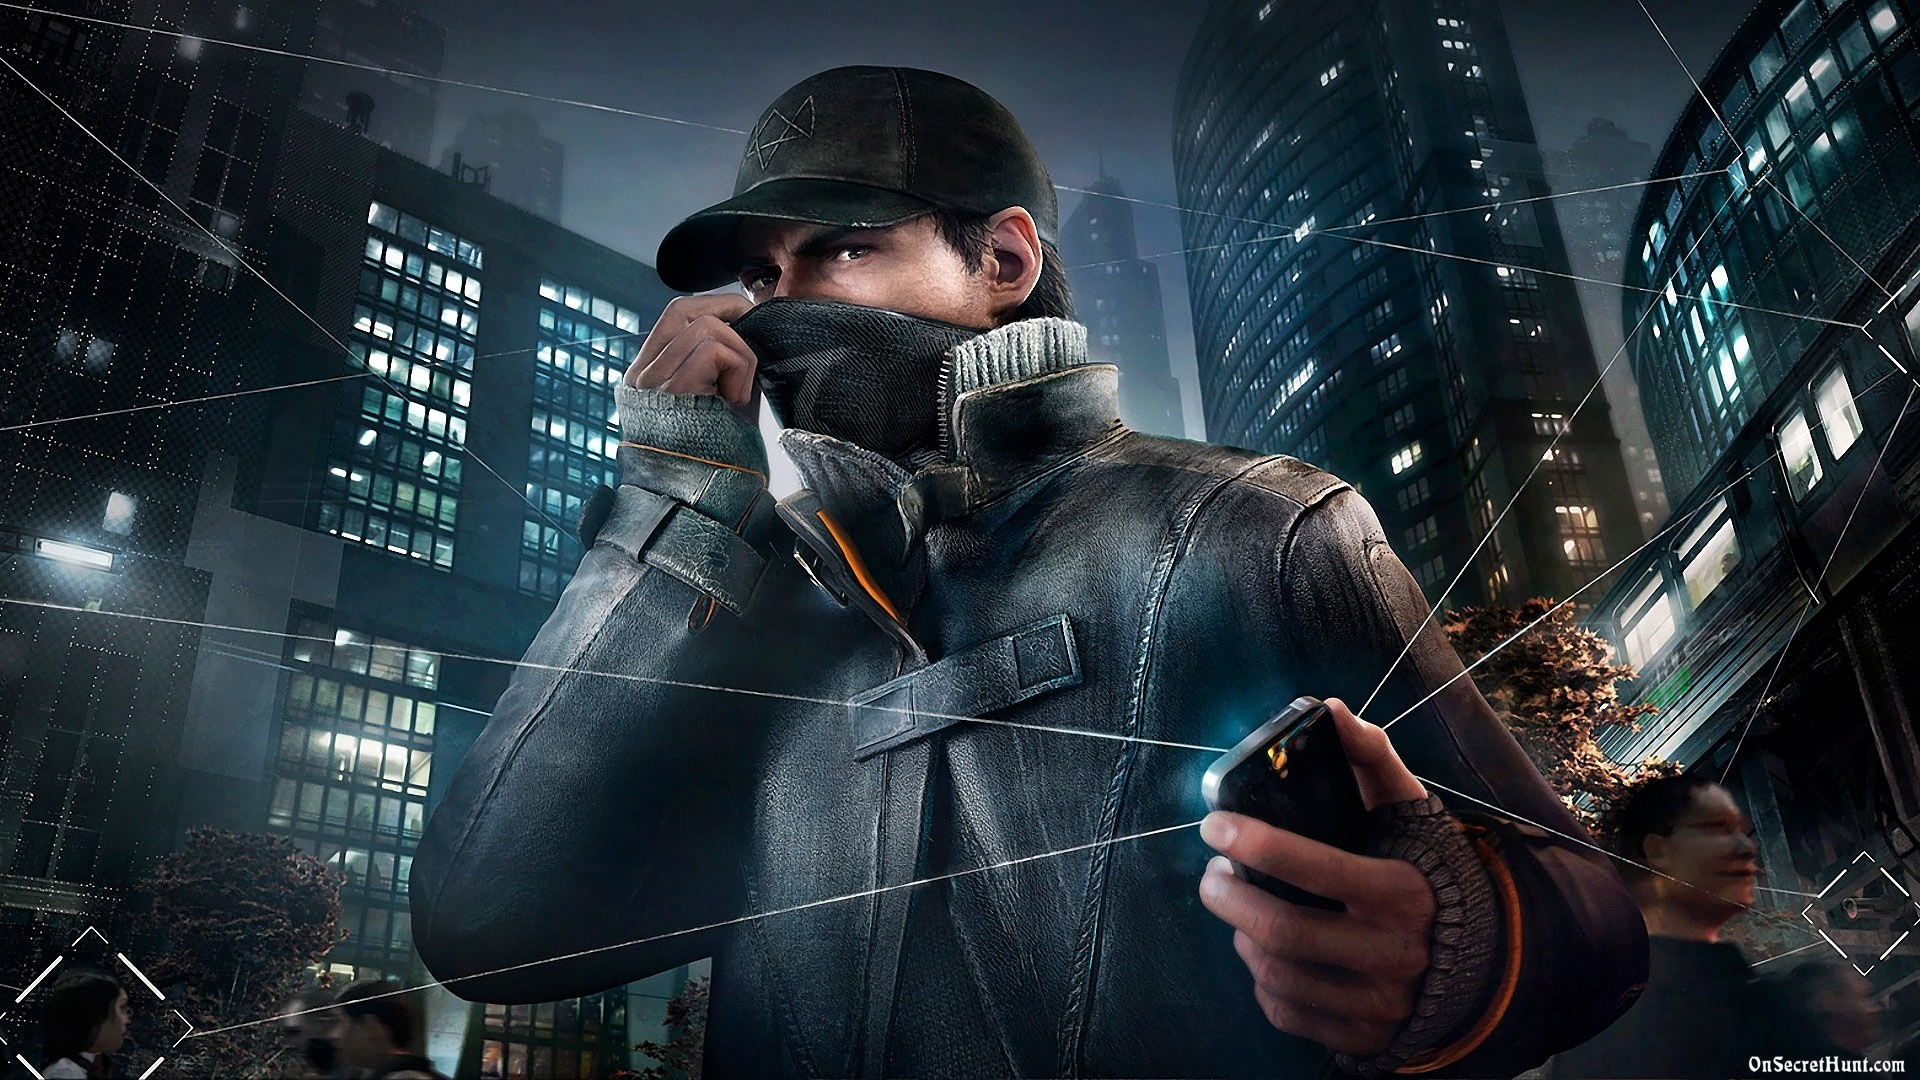 Watch Dogs Pc Cover. Video Game – Watch Dogs Wallpaper